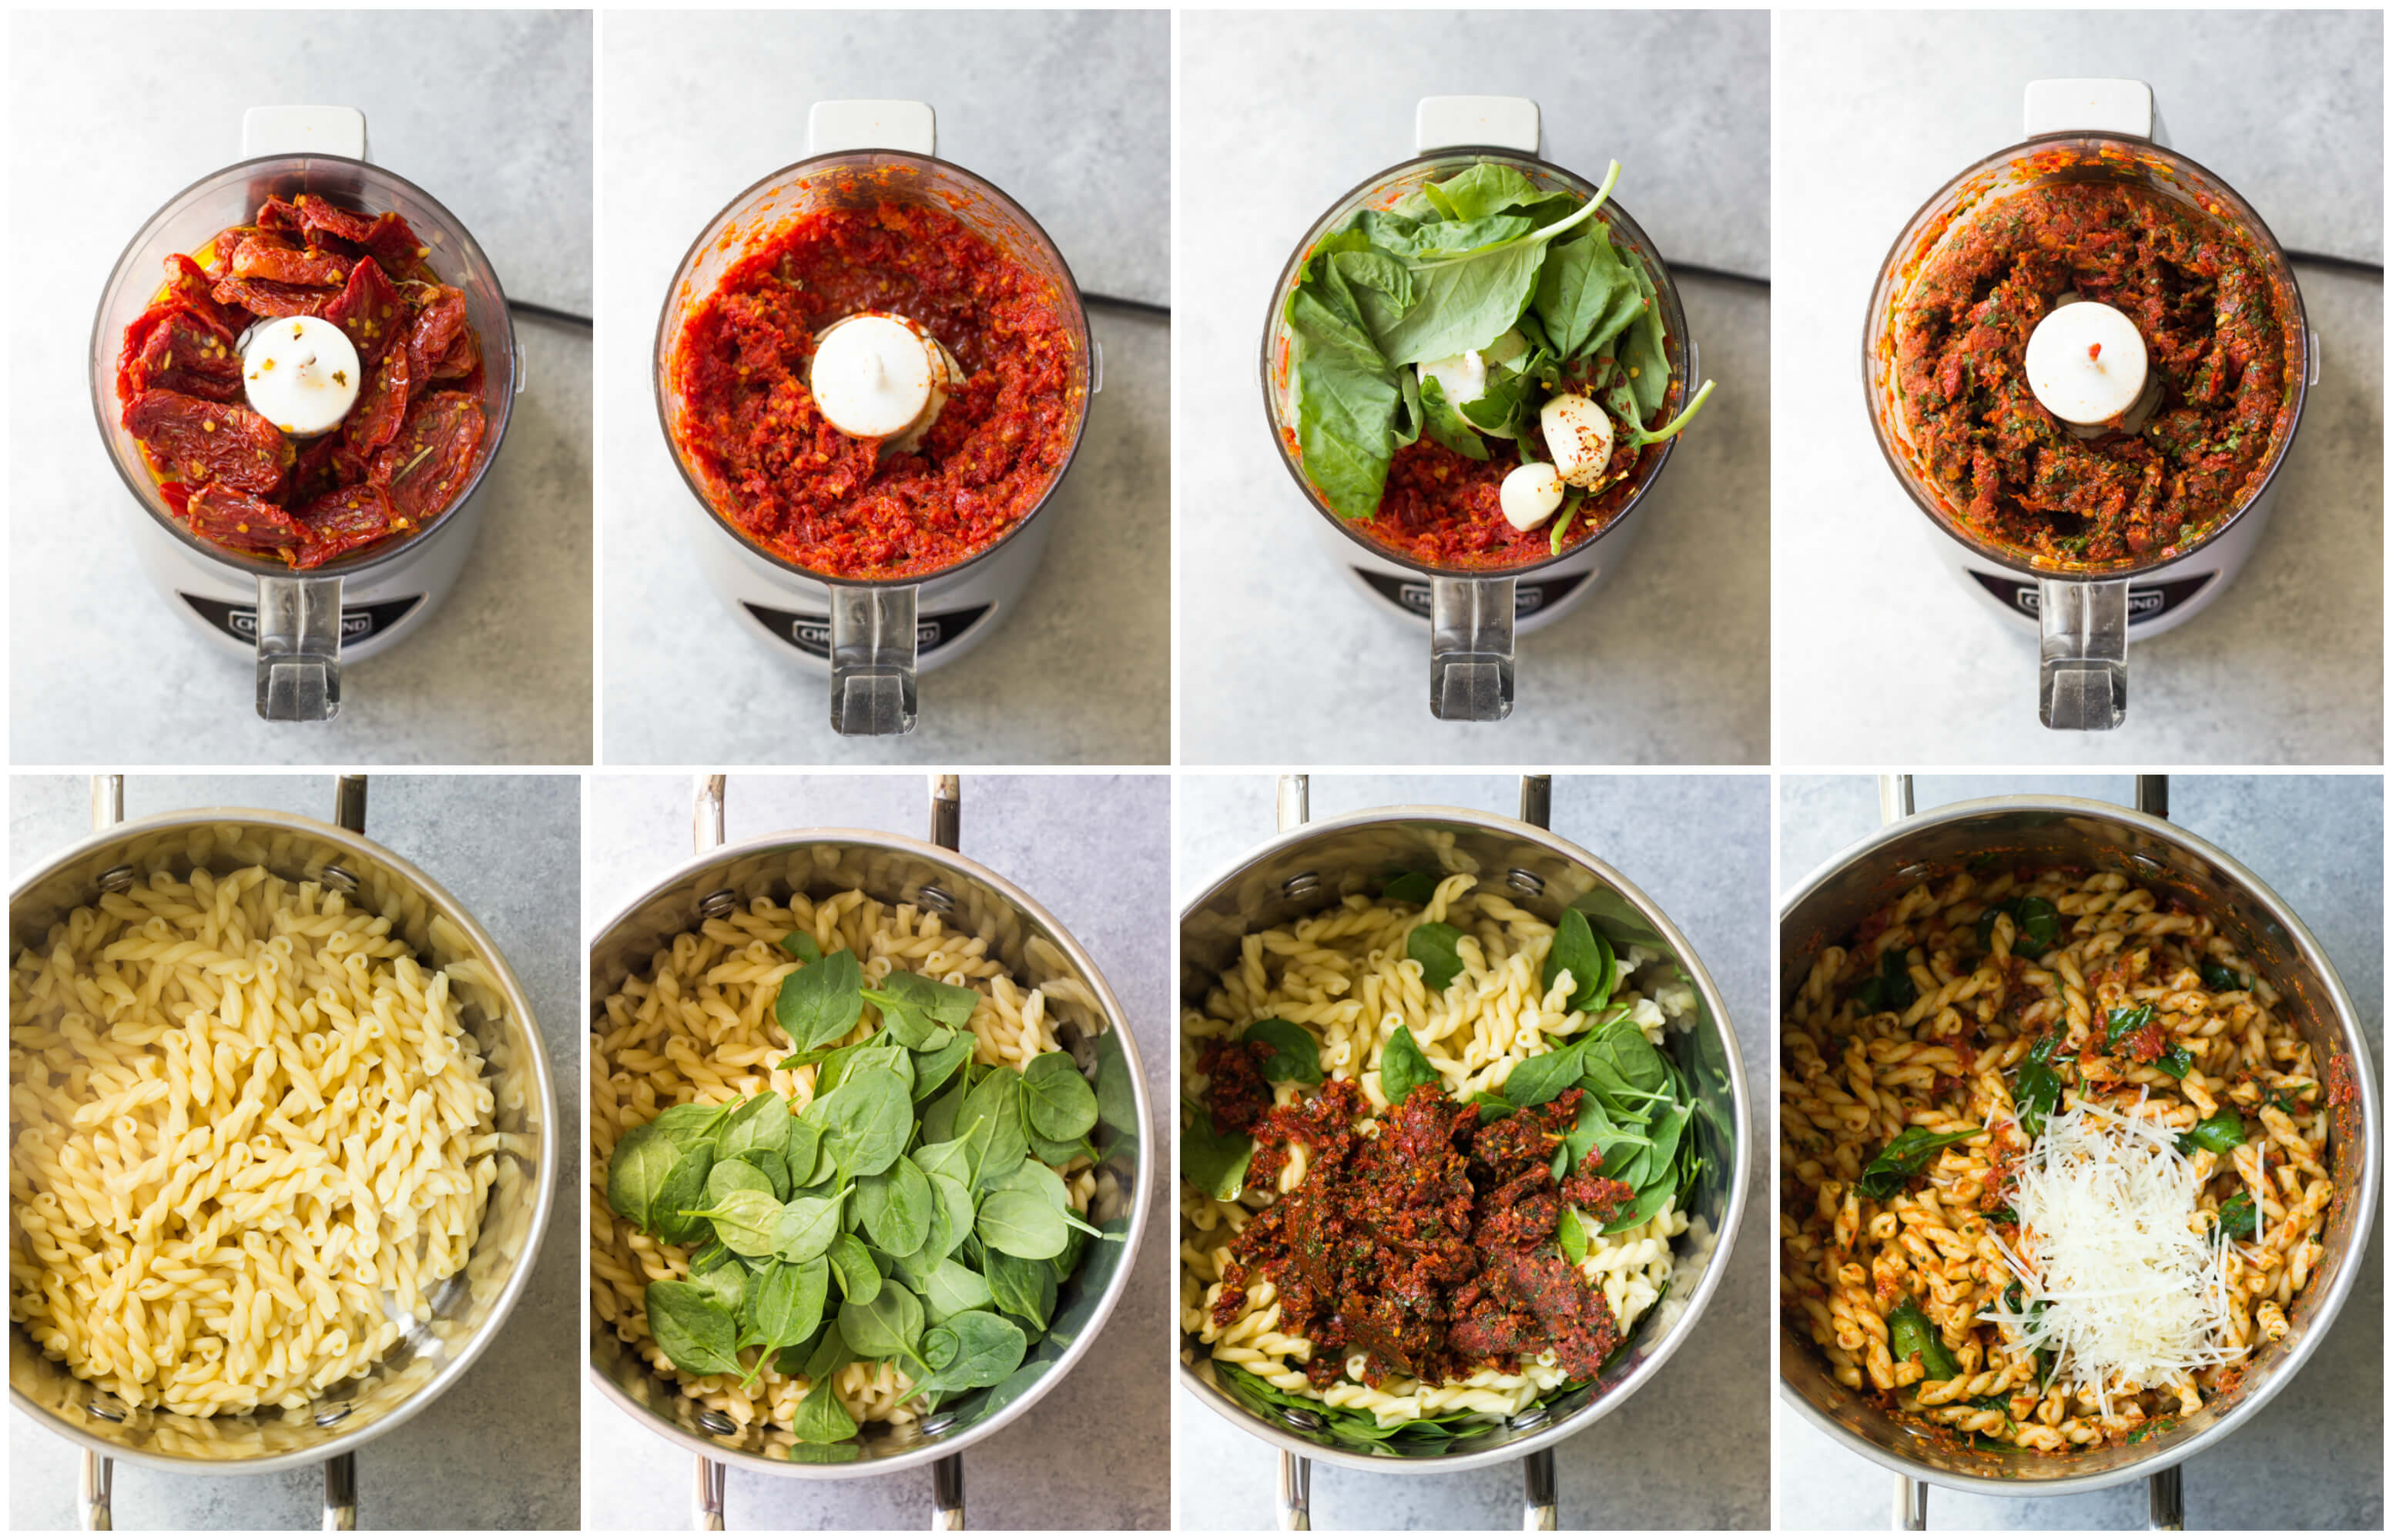 20-Minute Sun-Dried Tomato Pasta with Spinach - such an easy weeknight ...